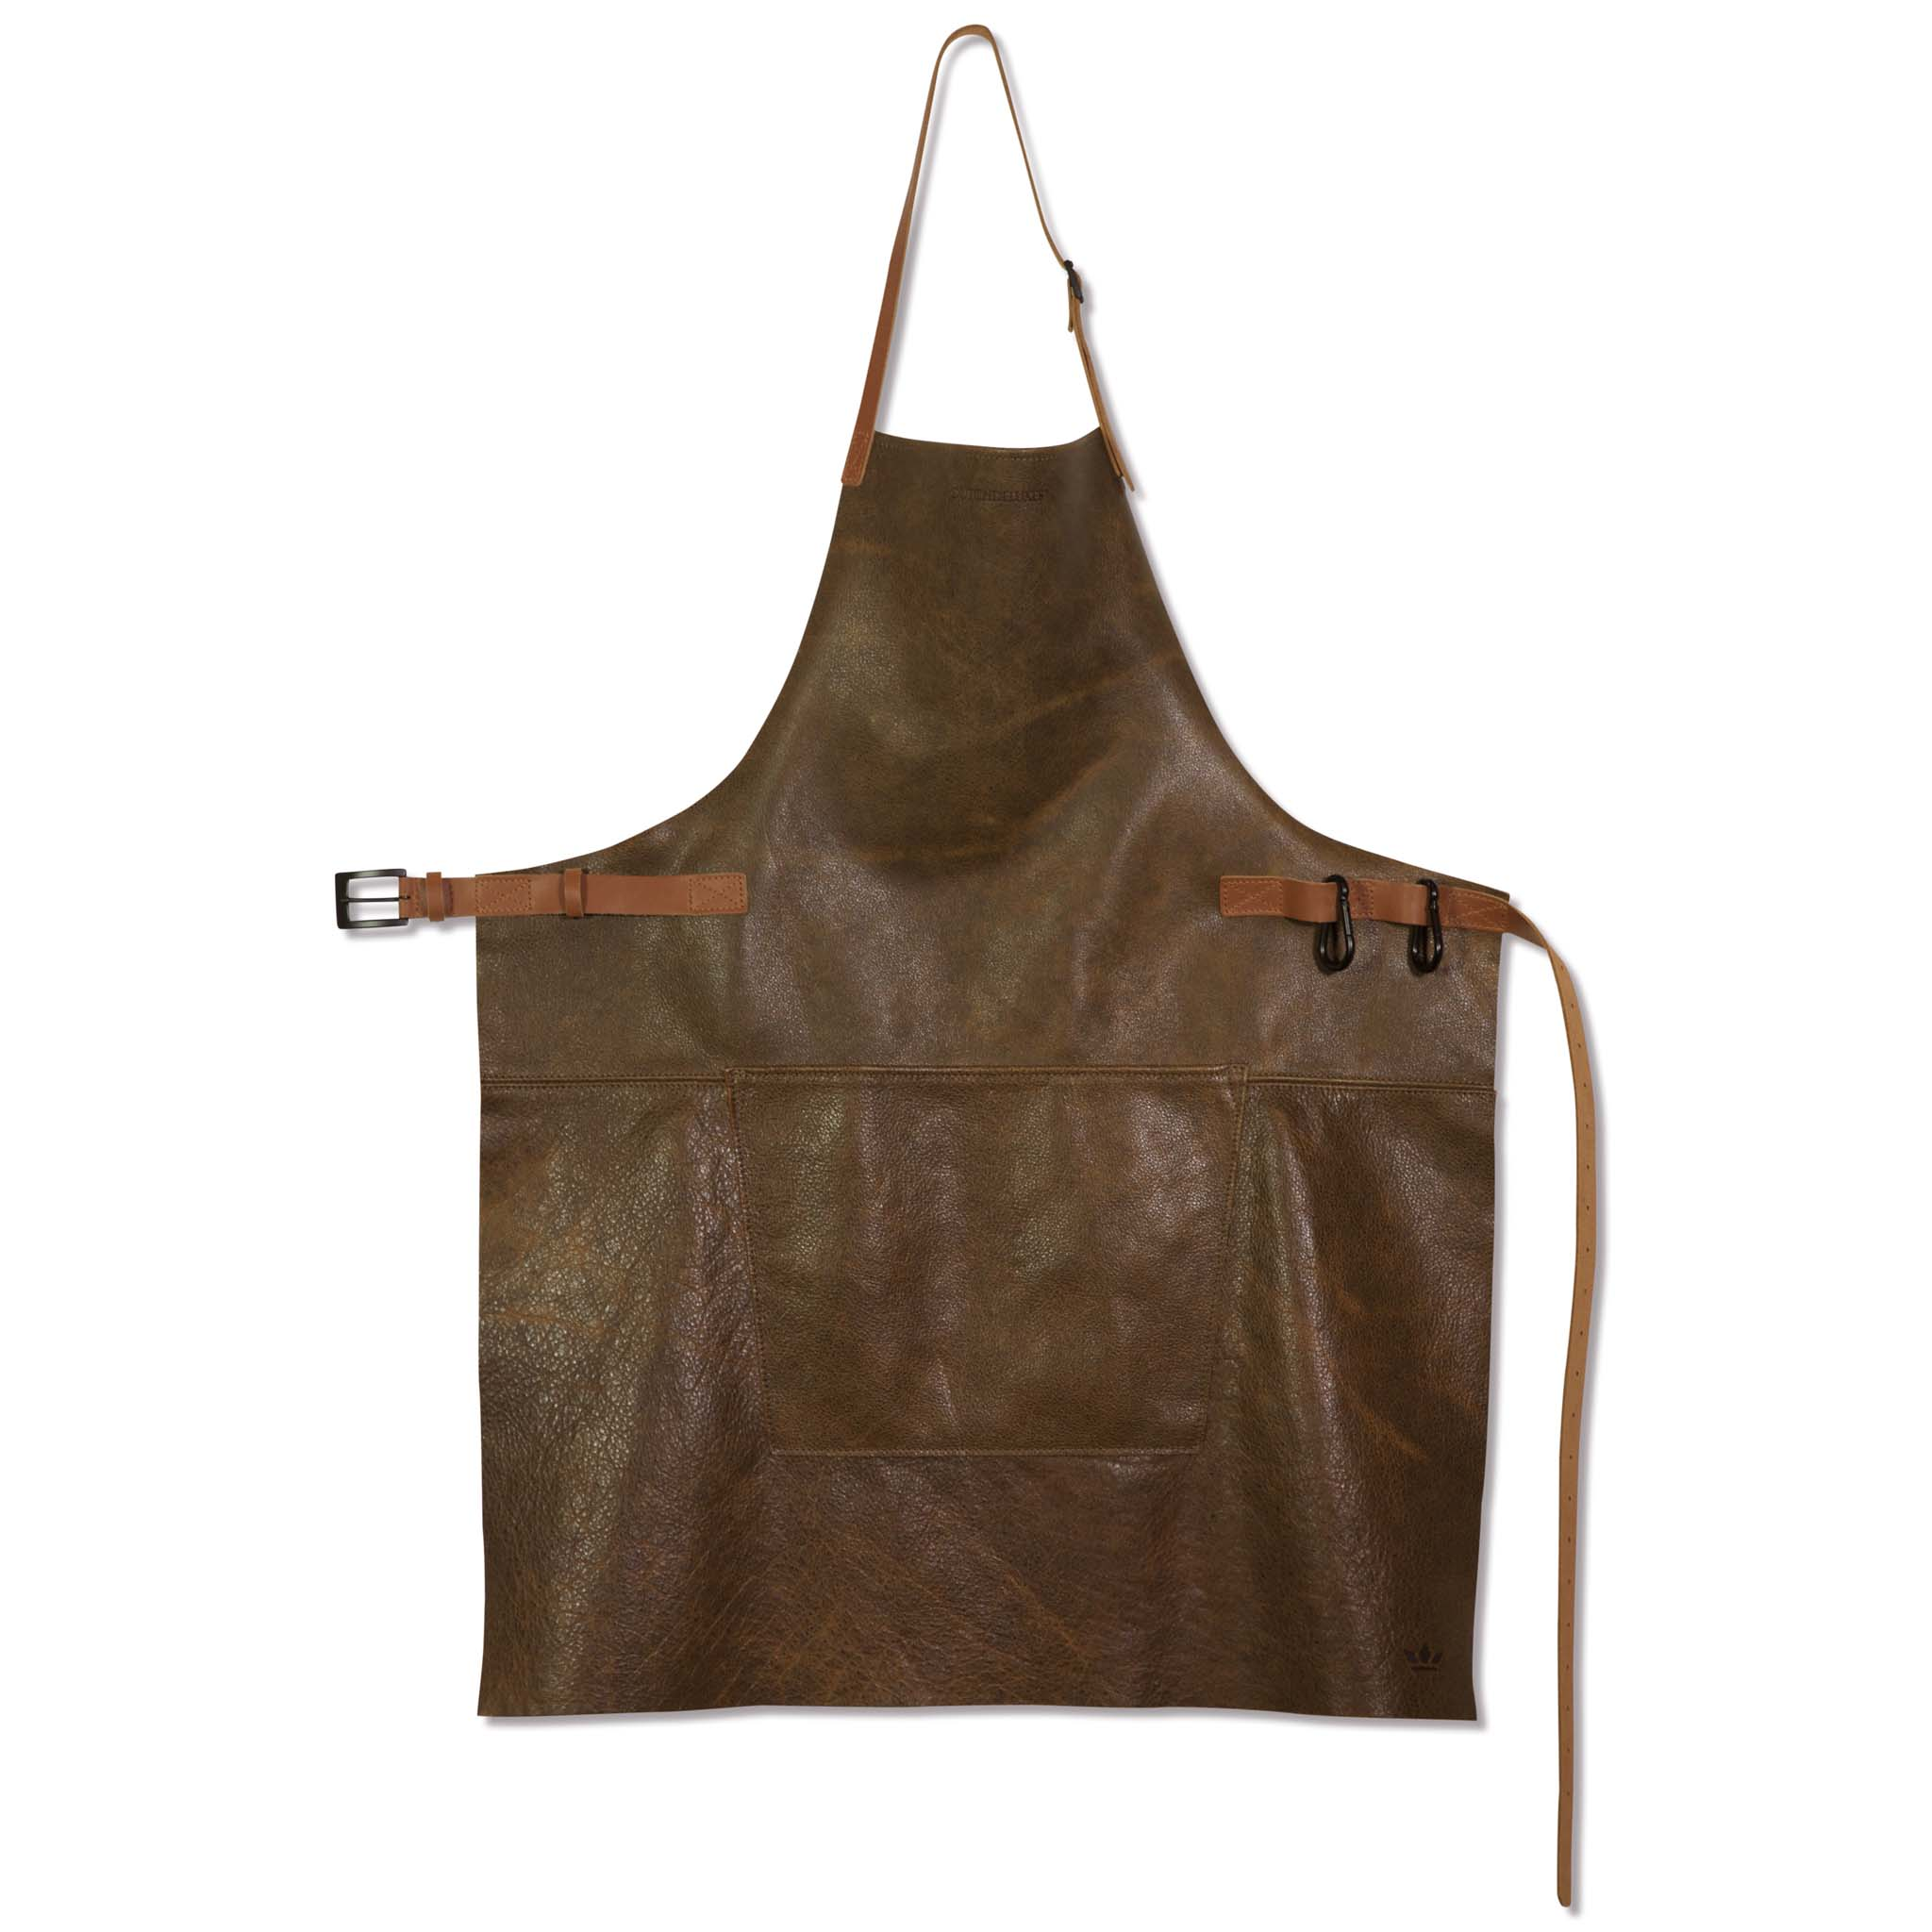 Dutchdeluxes Leather BBQ Apron in Vintage Brown Cookware Kitchen Clothing